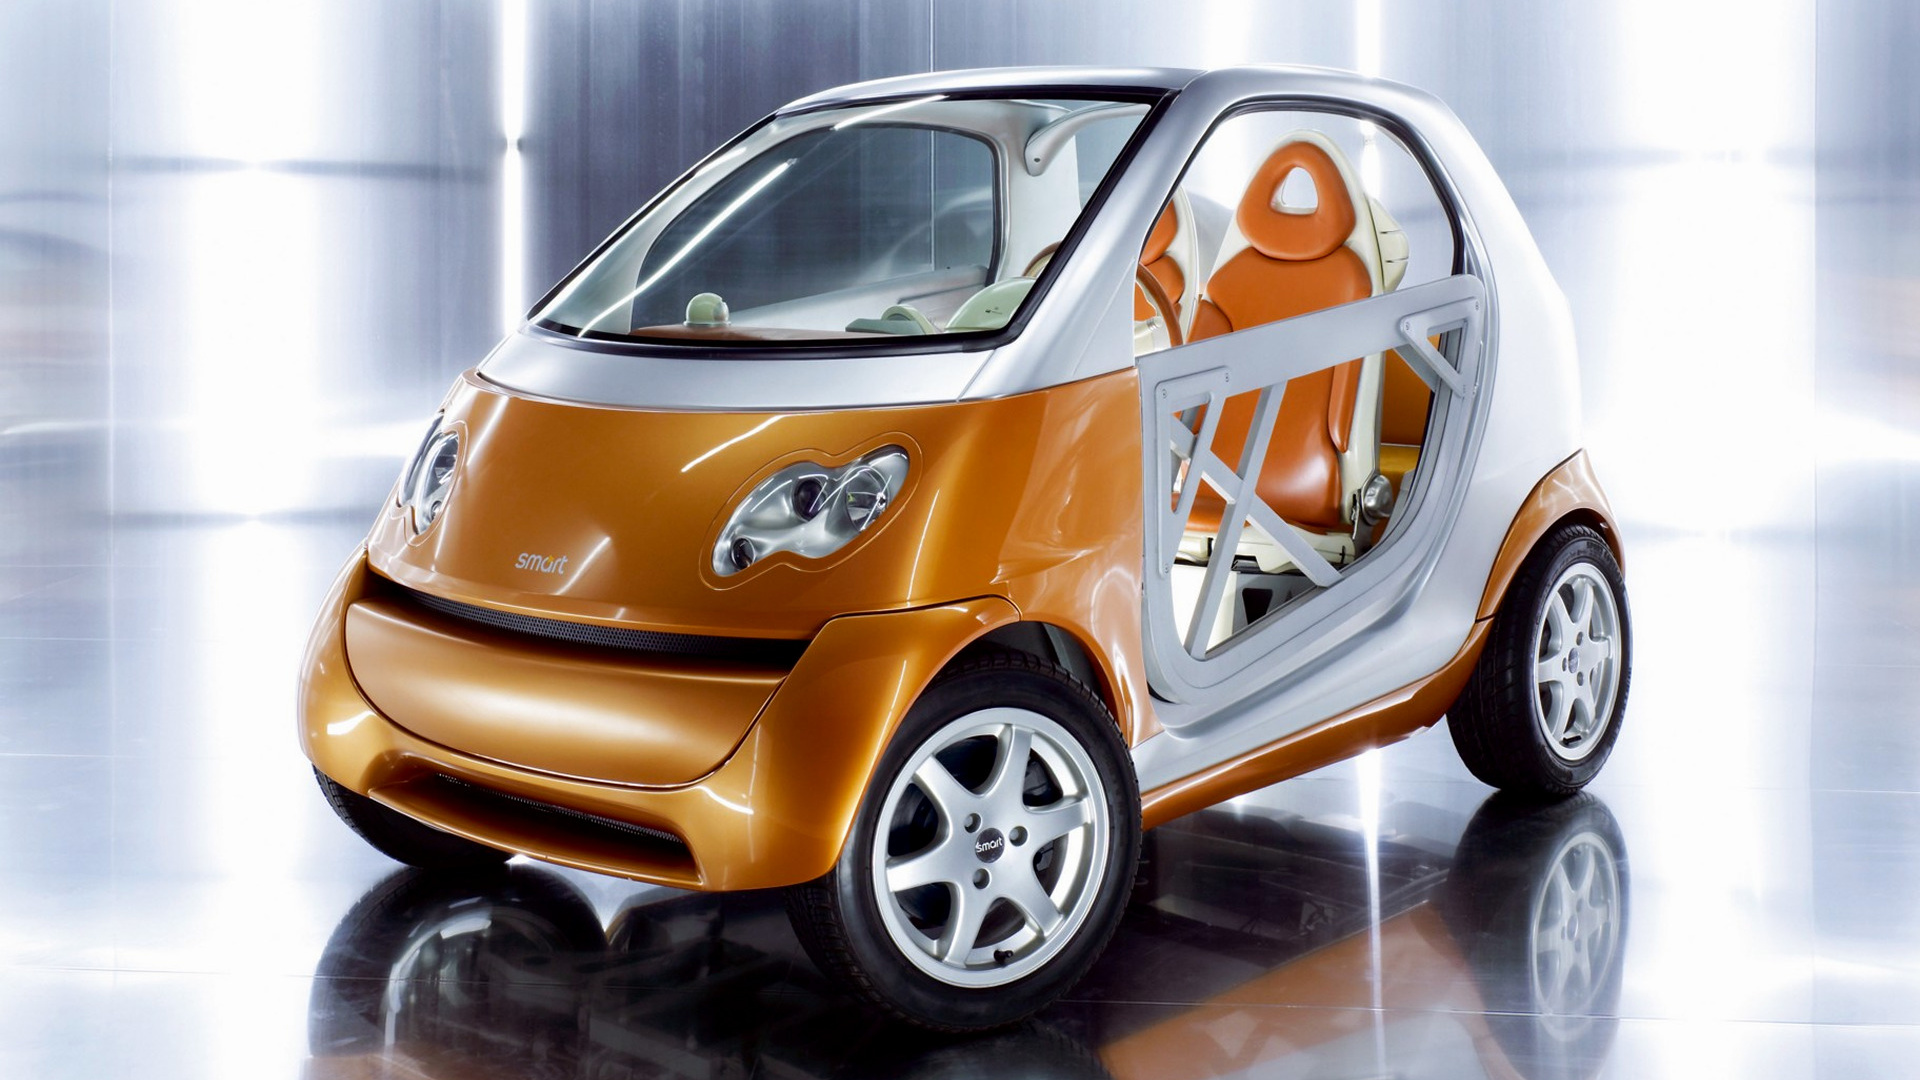 Smart Paris Concept (1996) Wallpapers and HD Images - Car ...